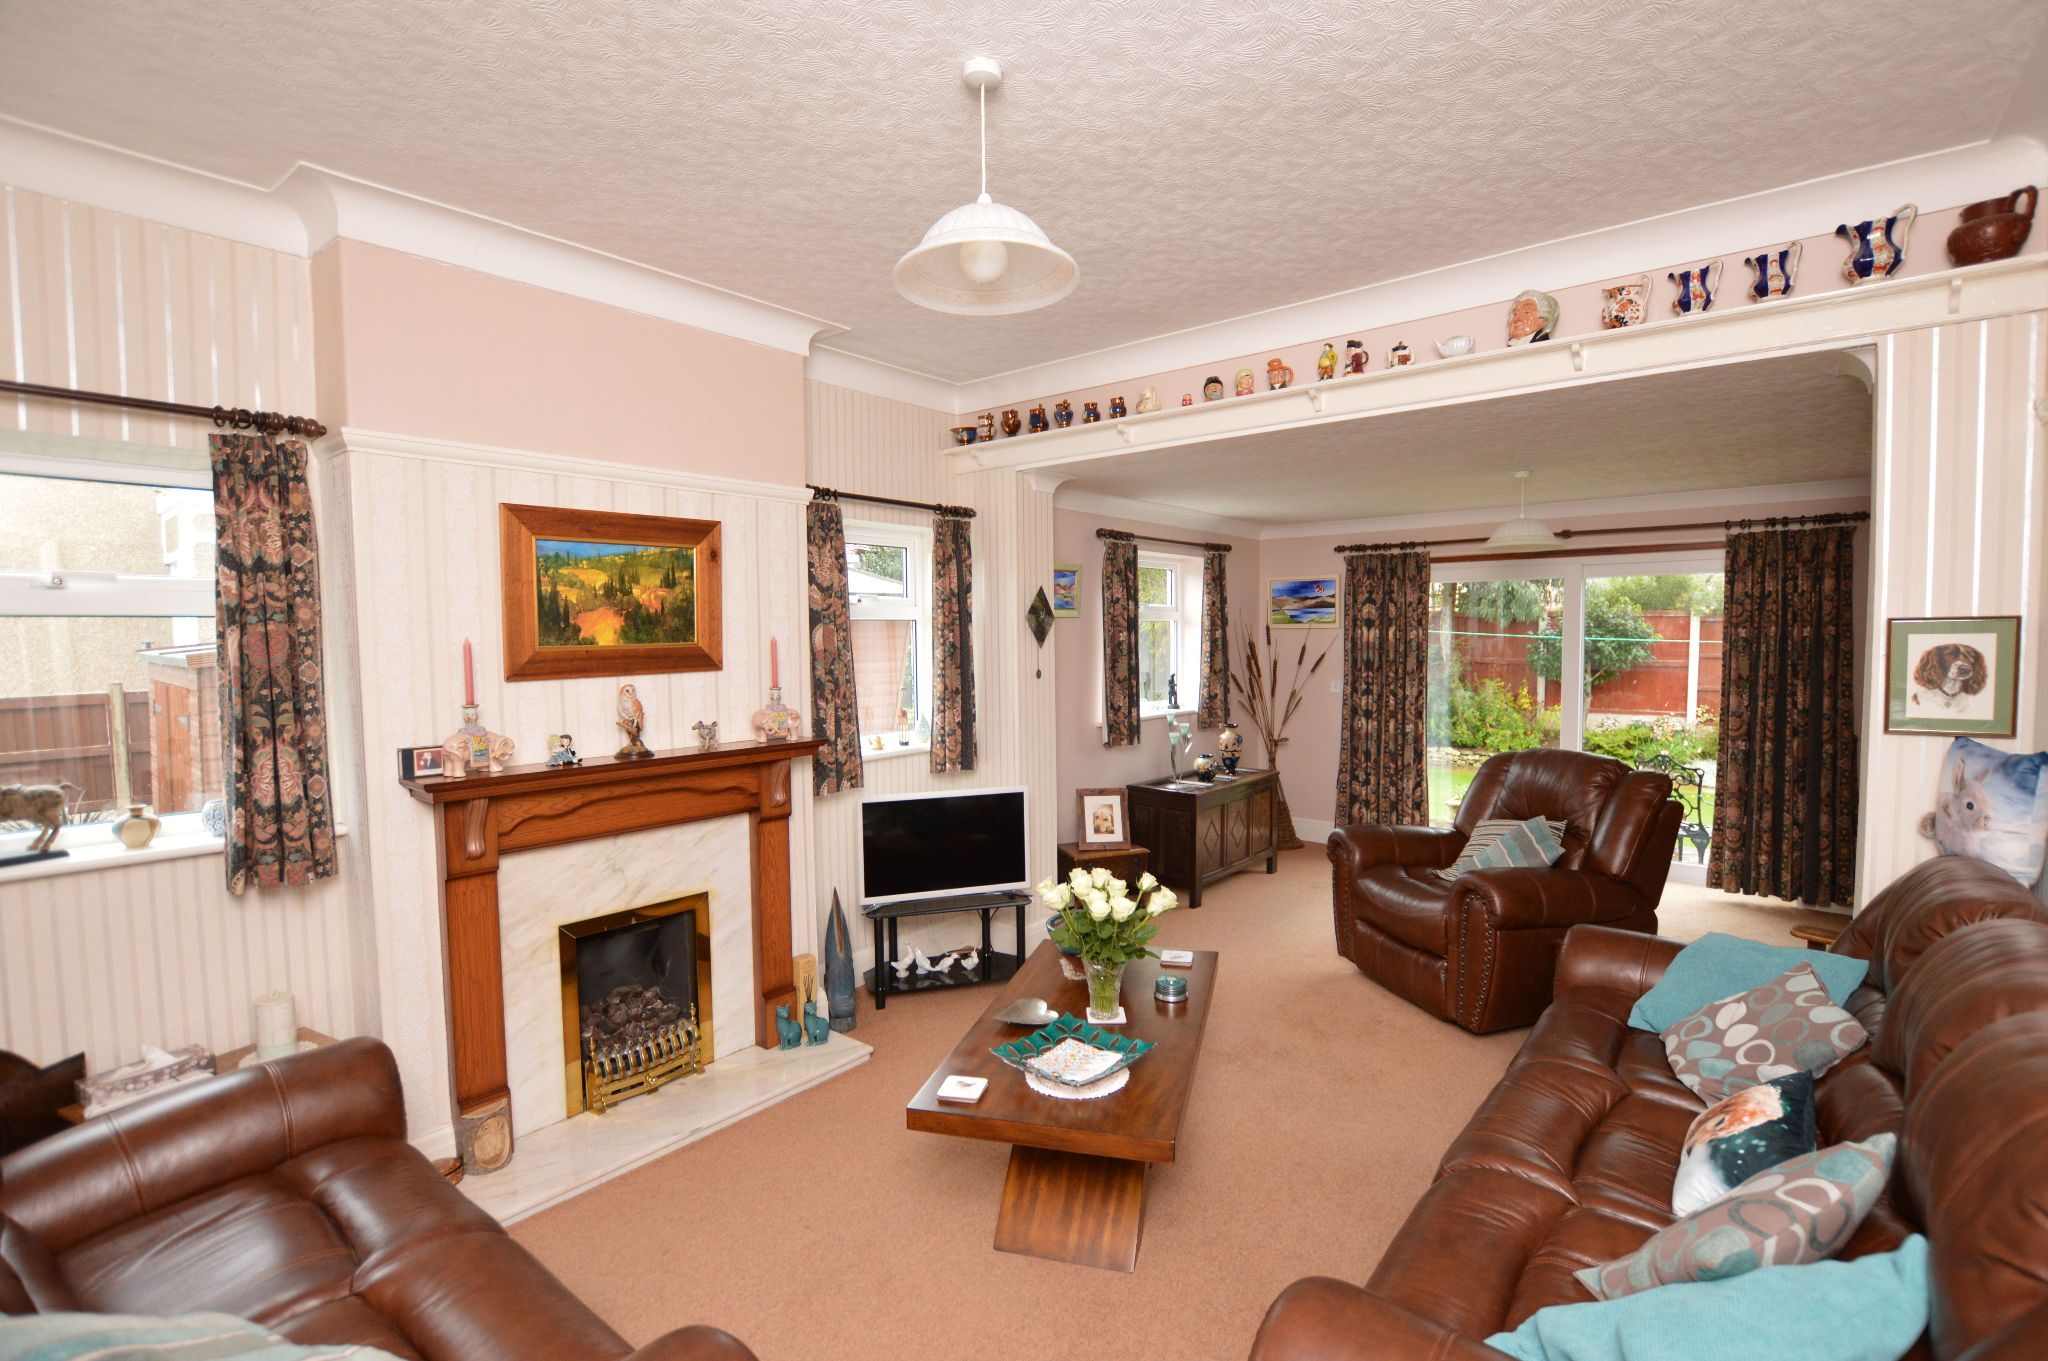 4 bedroom detached house For Sale in Abergele - Lounge